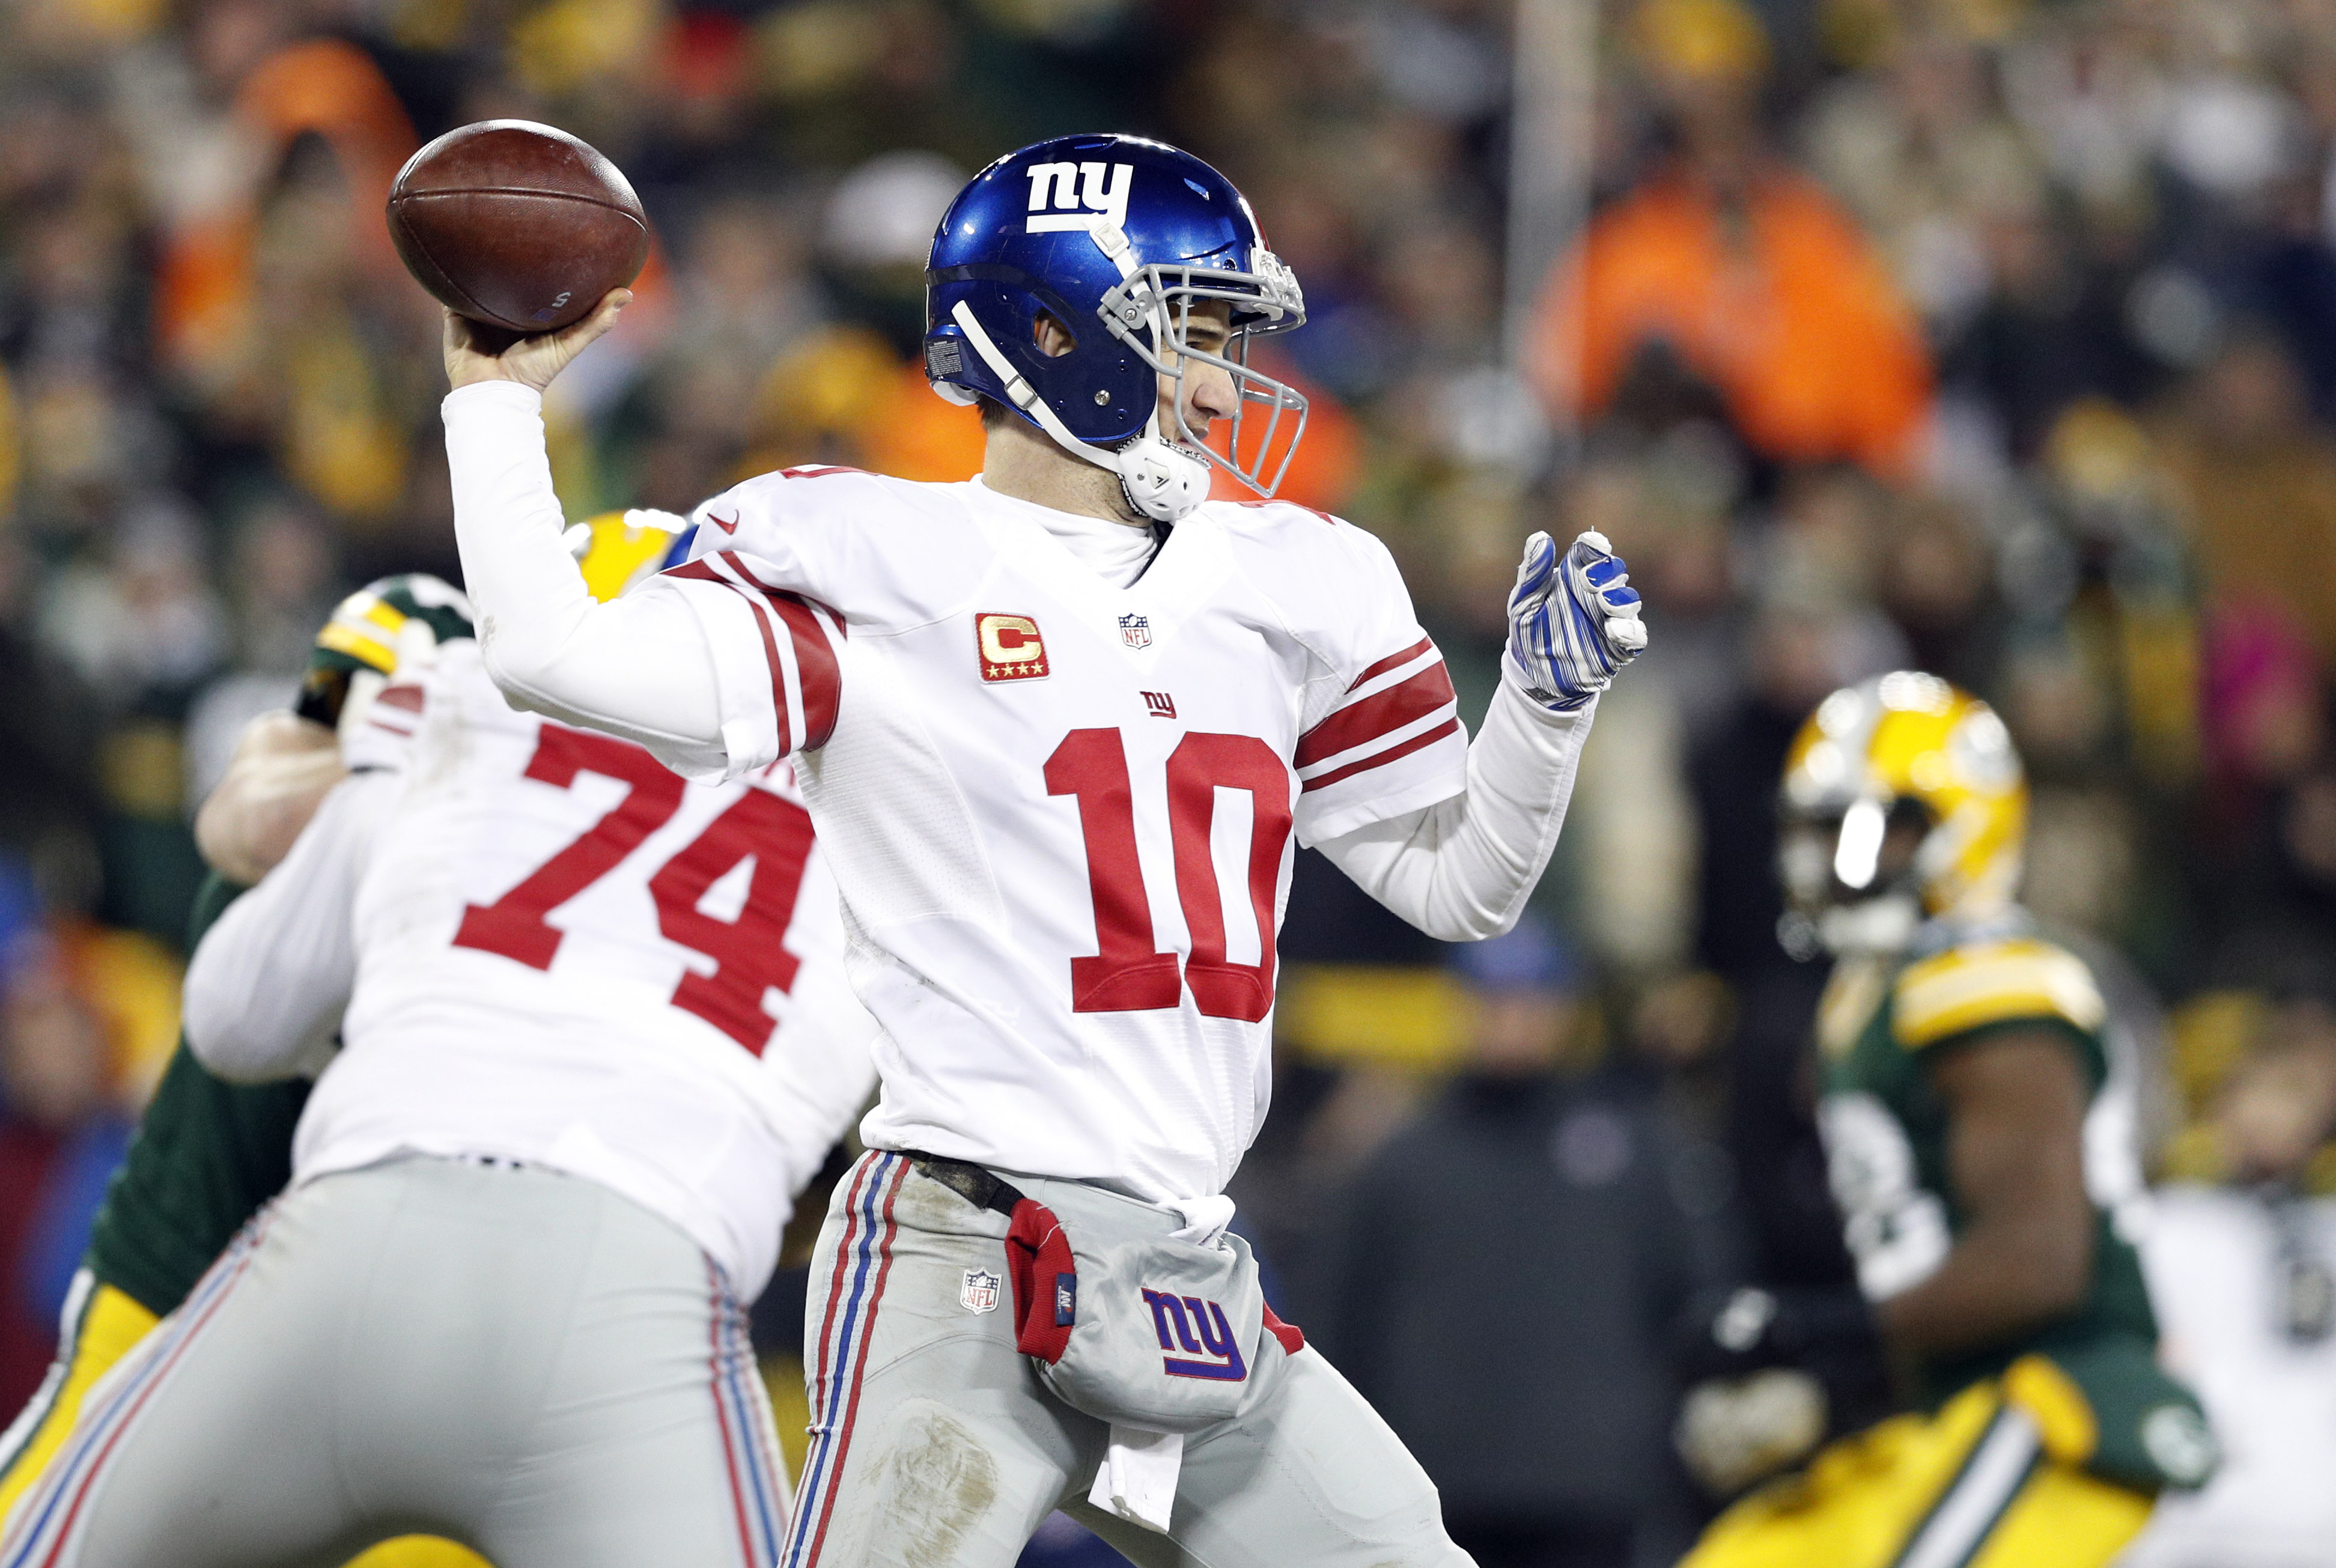 9798569-nfl-nfc-wild-card-new-york-giants-at-green-bay-packers